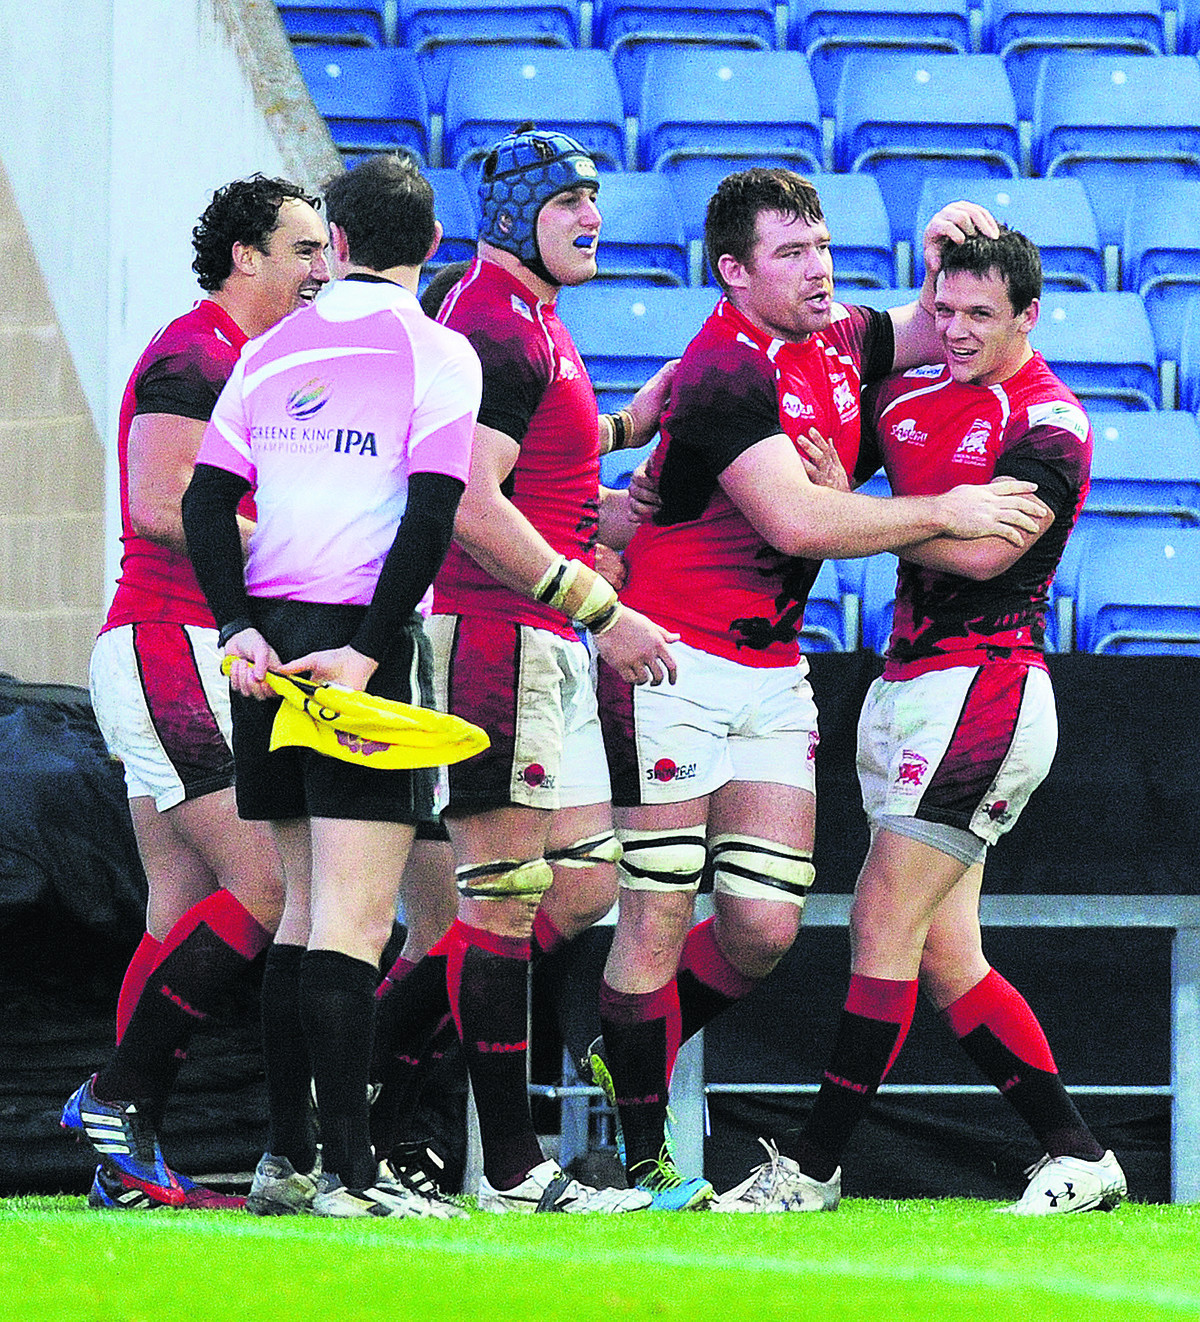 Ollie Stedman (second right), pictured celebrating his try against Bristol at the Kassam Stadium in November, retains his place to face Pontypridd, which Rob Lewis (right) will captain